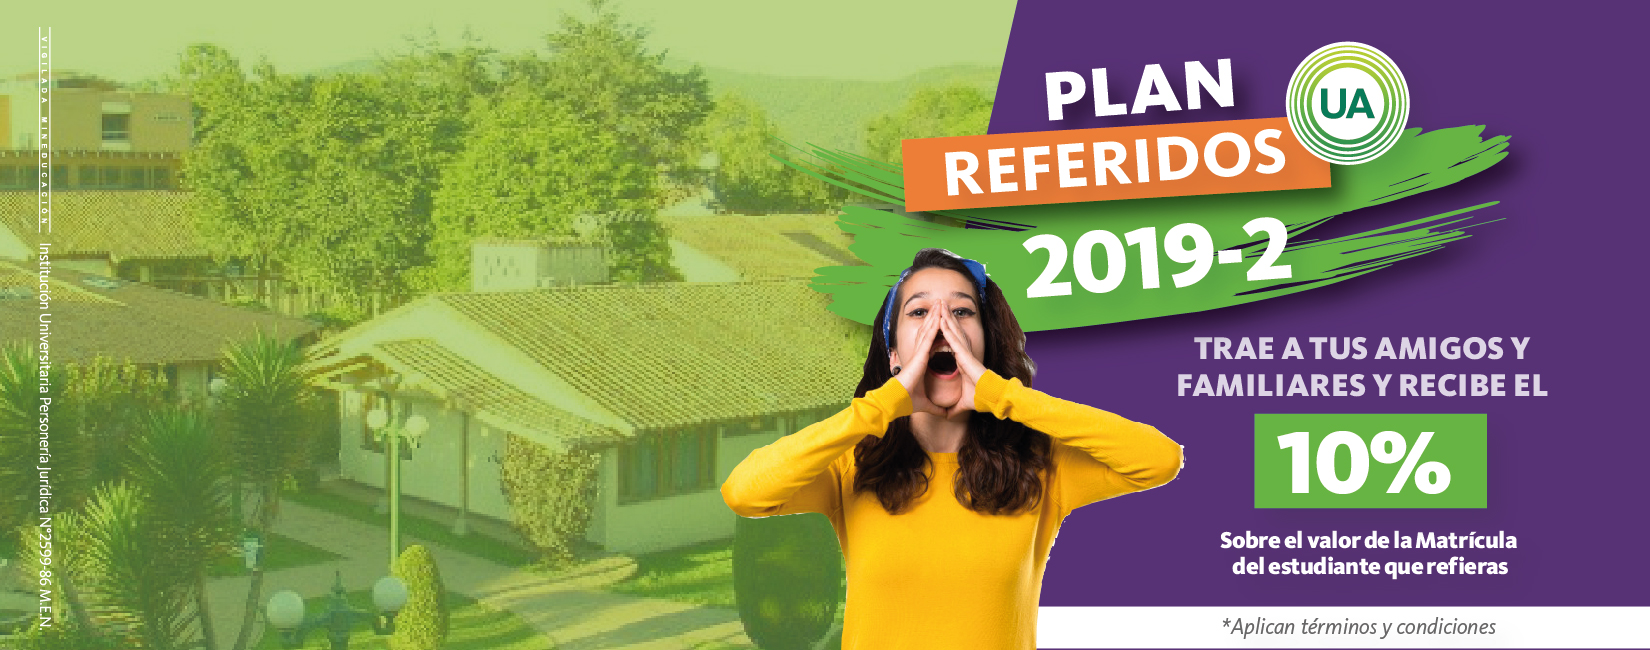 Plan referidos 2019